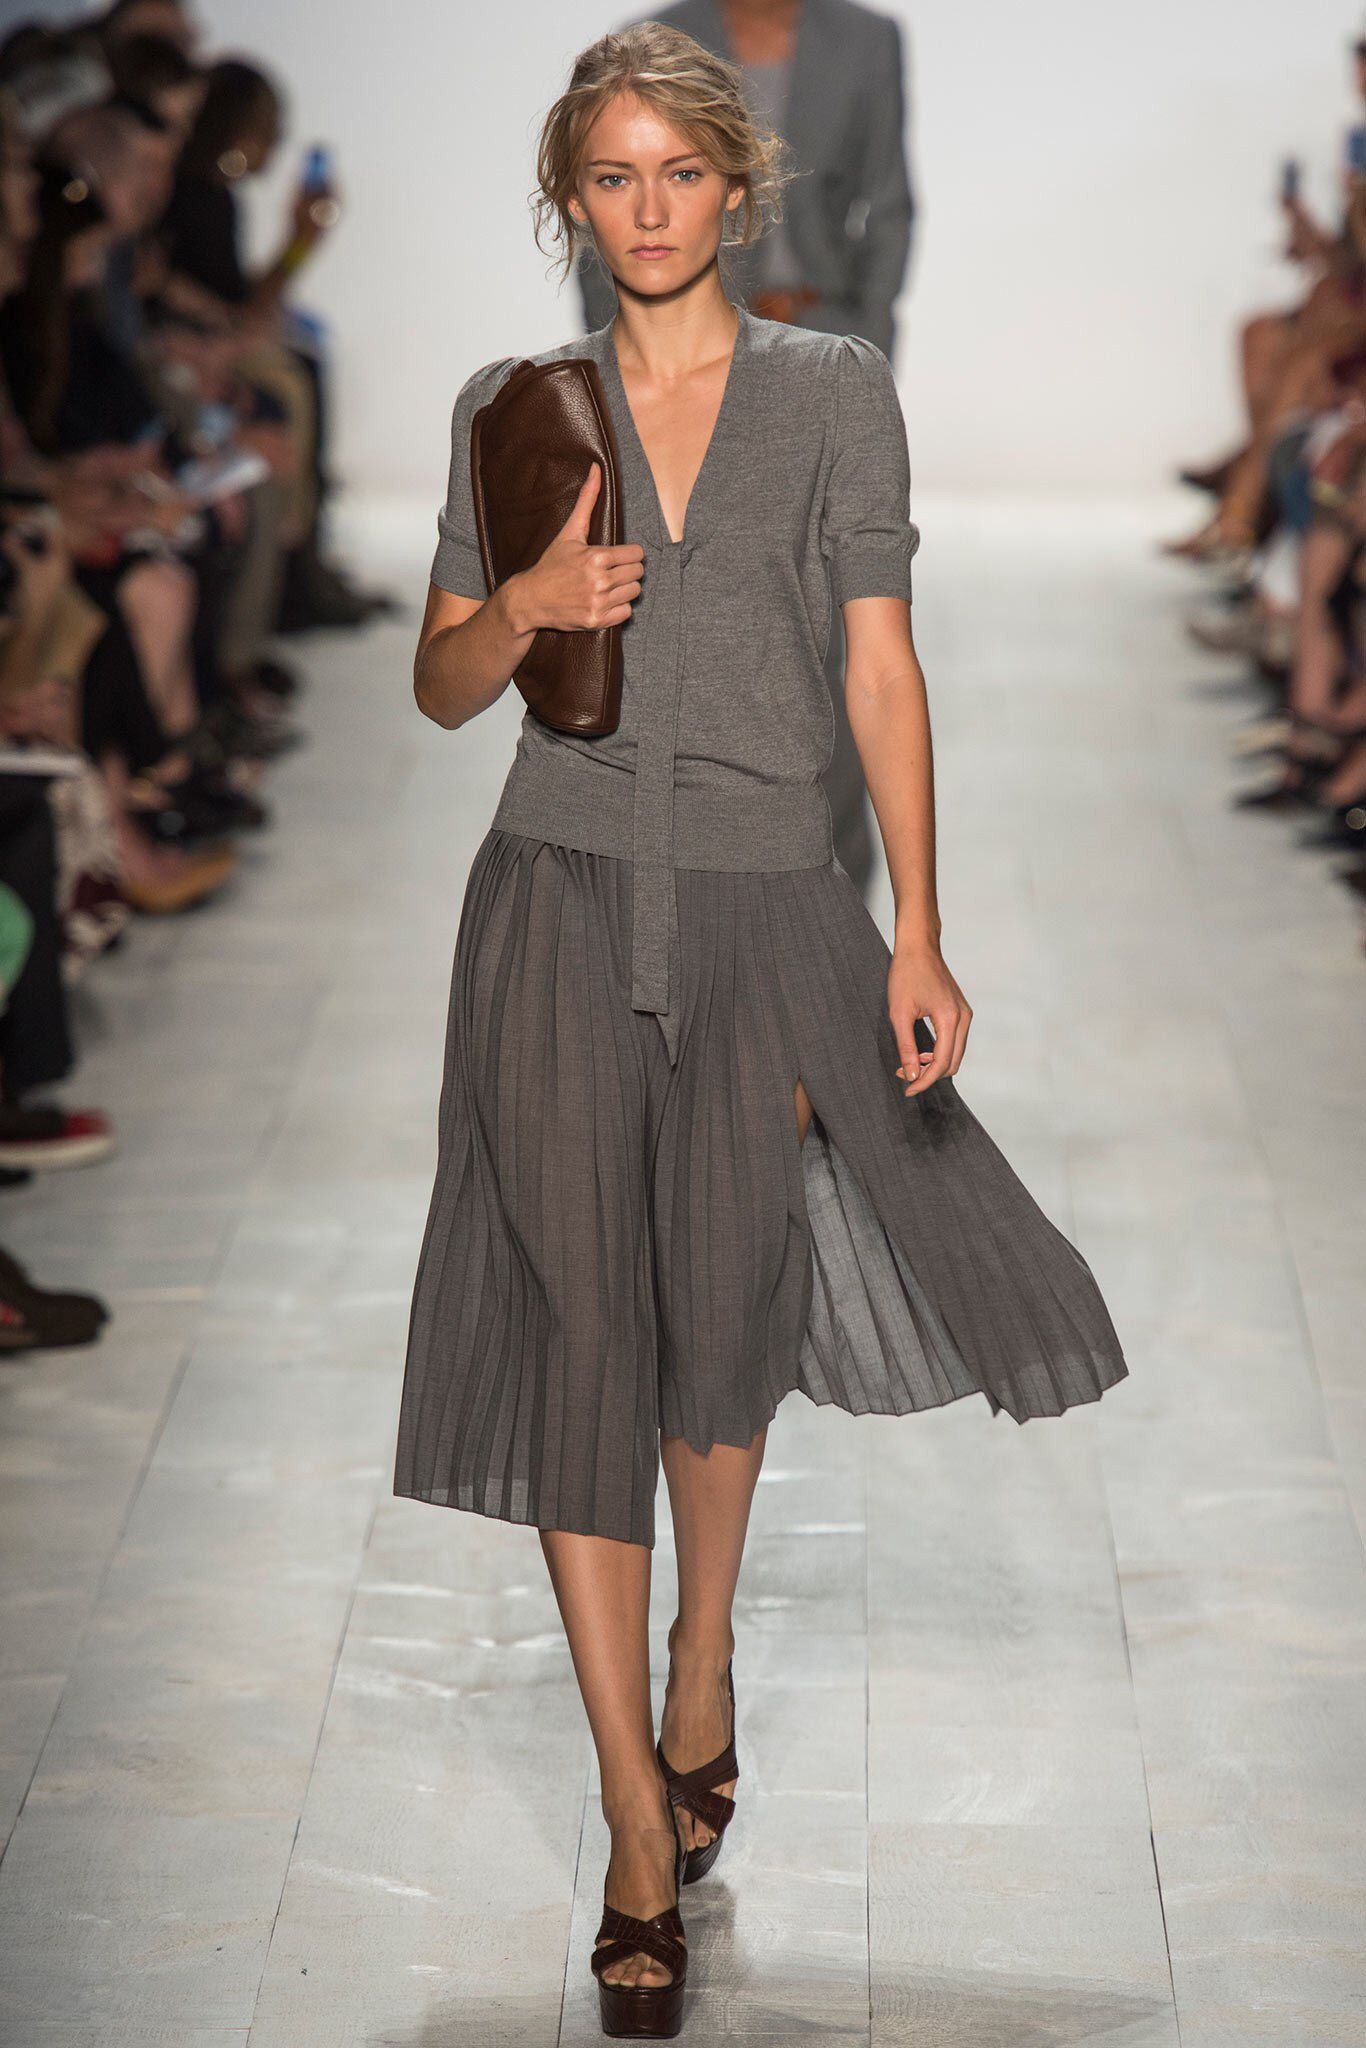 Michael Kors Collection Spring 7 Ready-to-Wear Fashion Show